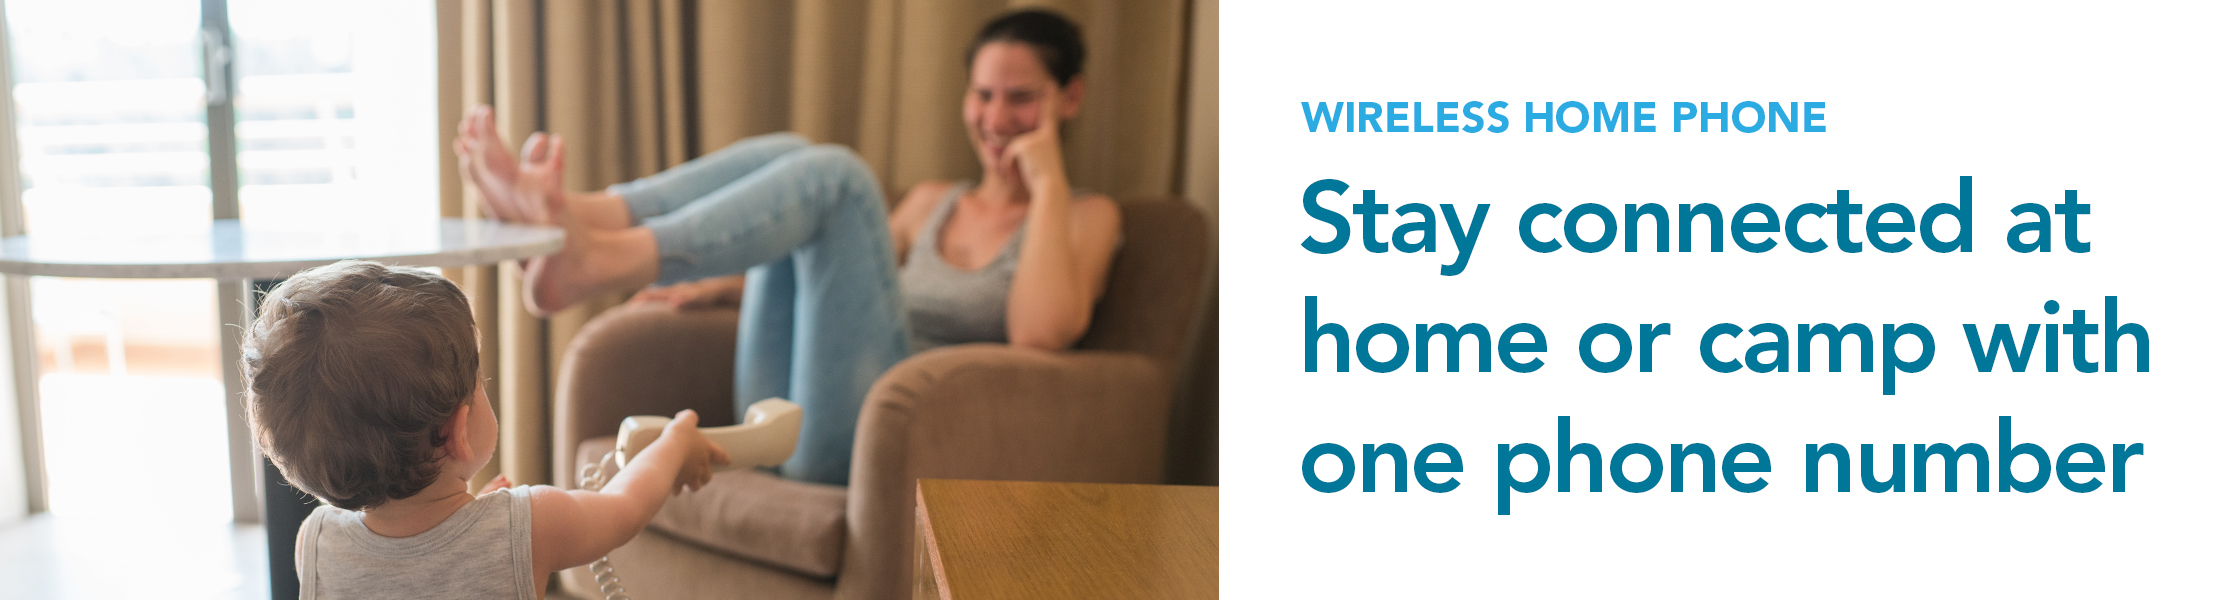 Stay connected at home or camp with one phone number